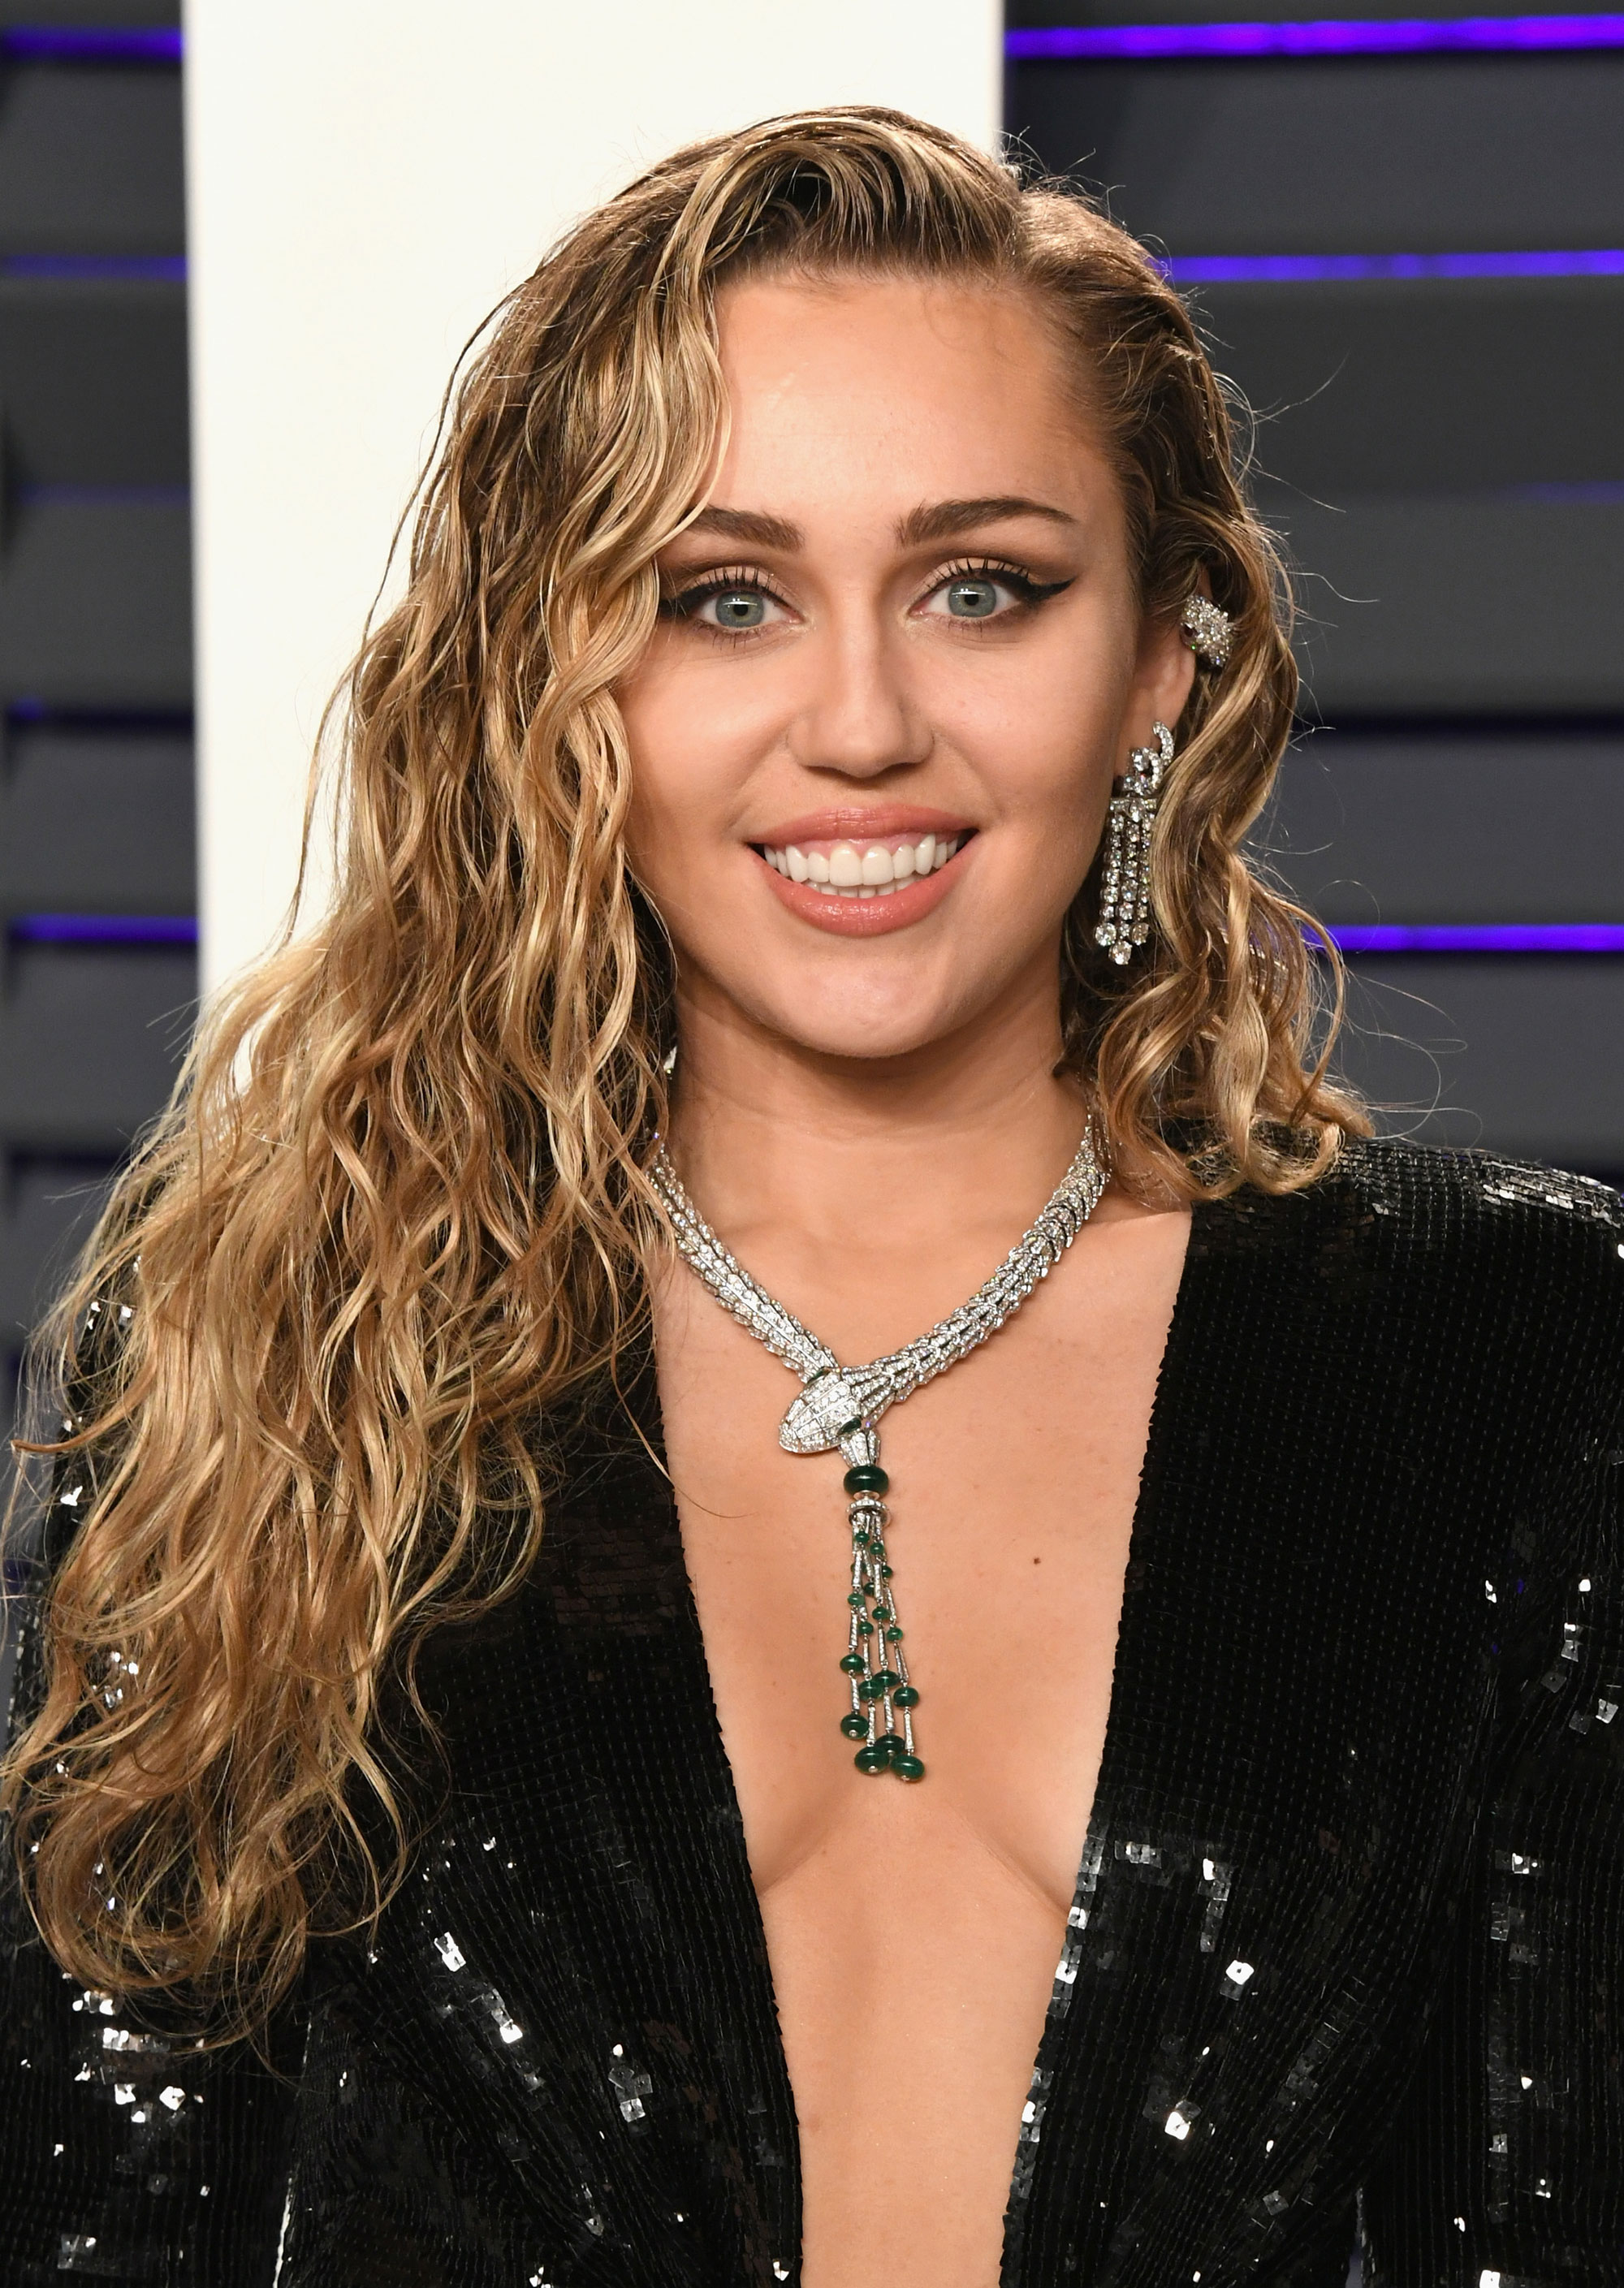 Miley Cyrus Has Purple Hair in the New 'Black Mirror' Trailer